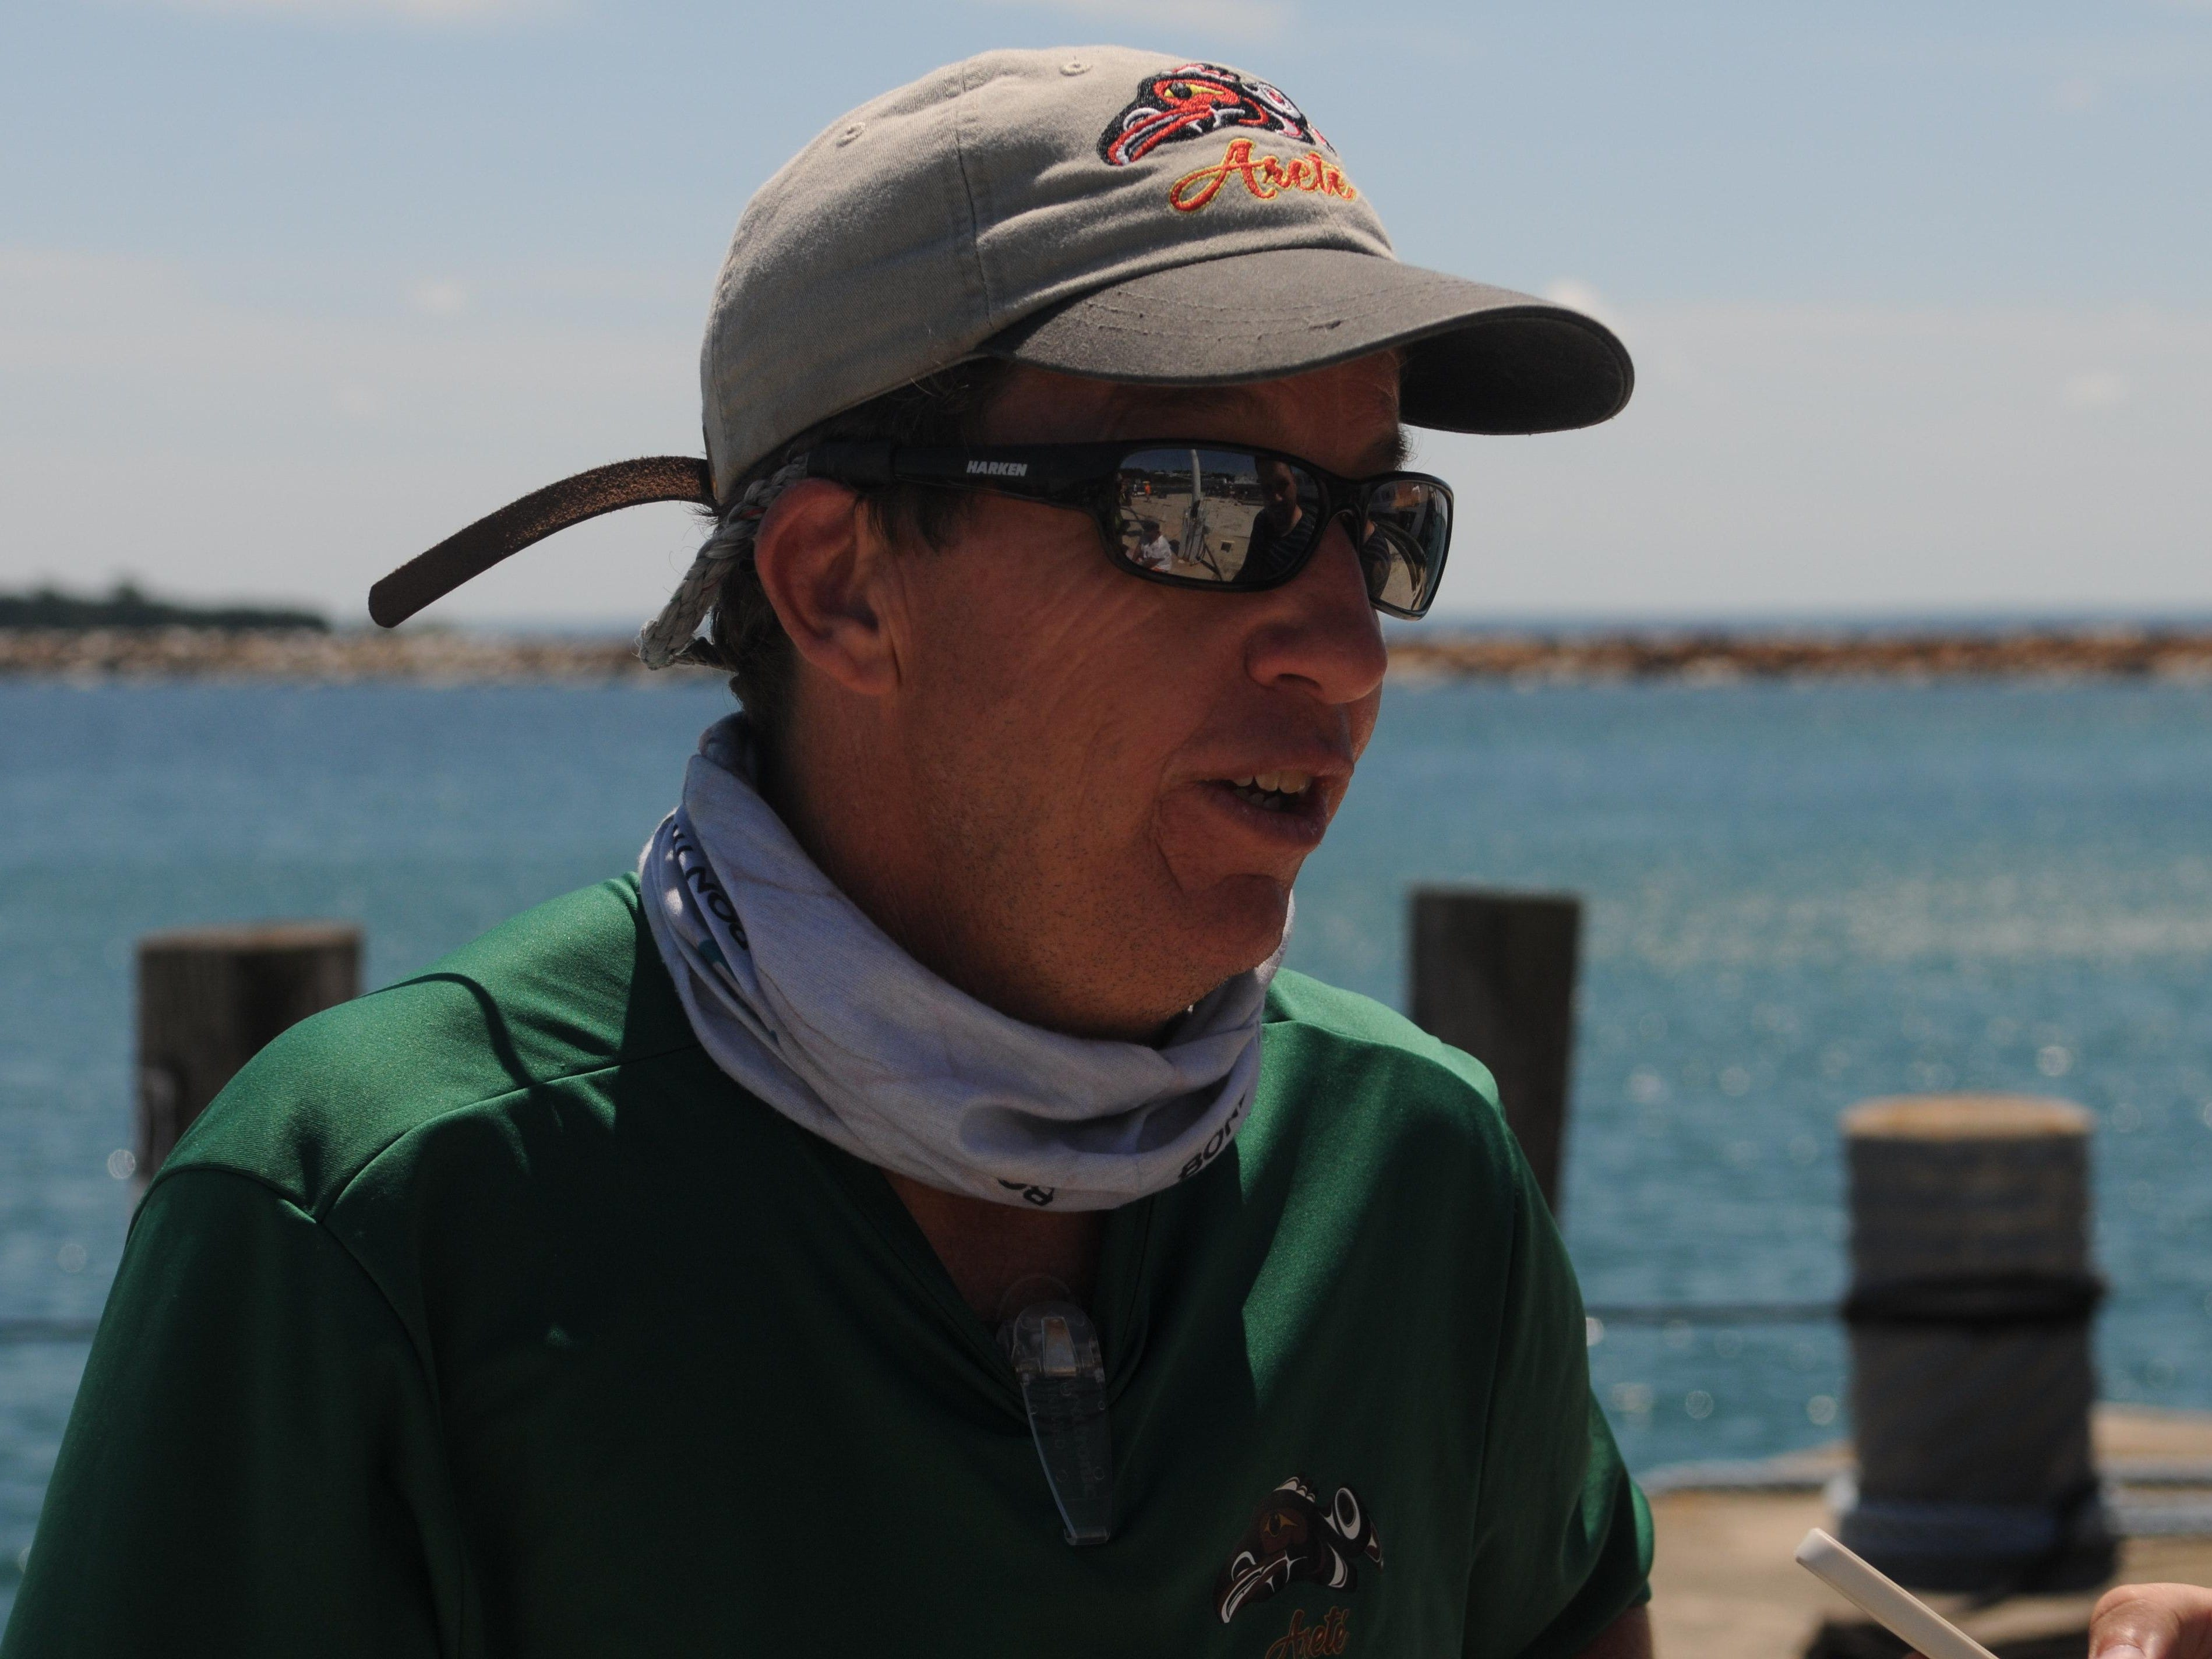 Mike McGarry of Palm Bay, Florida talks about the Port Huron-to-Mackinac Island Sailboat Race Sunday and being the first boat to the island.